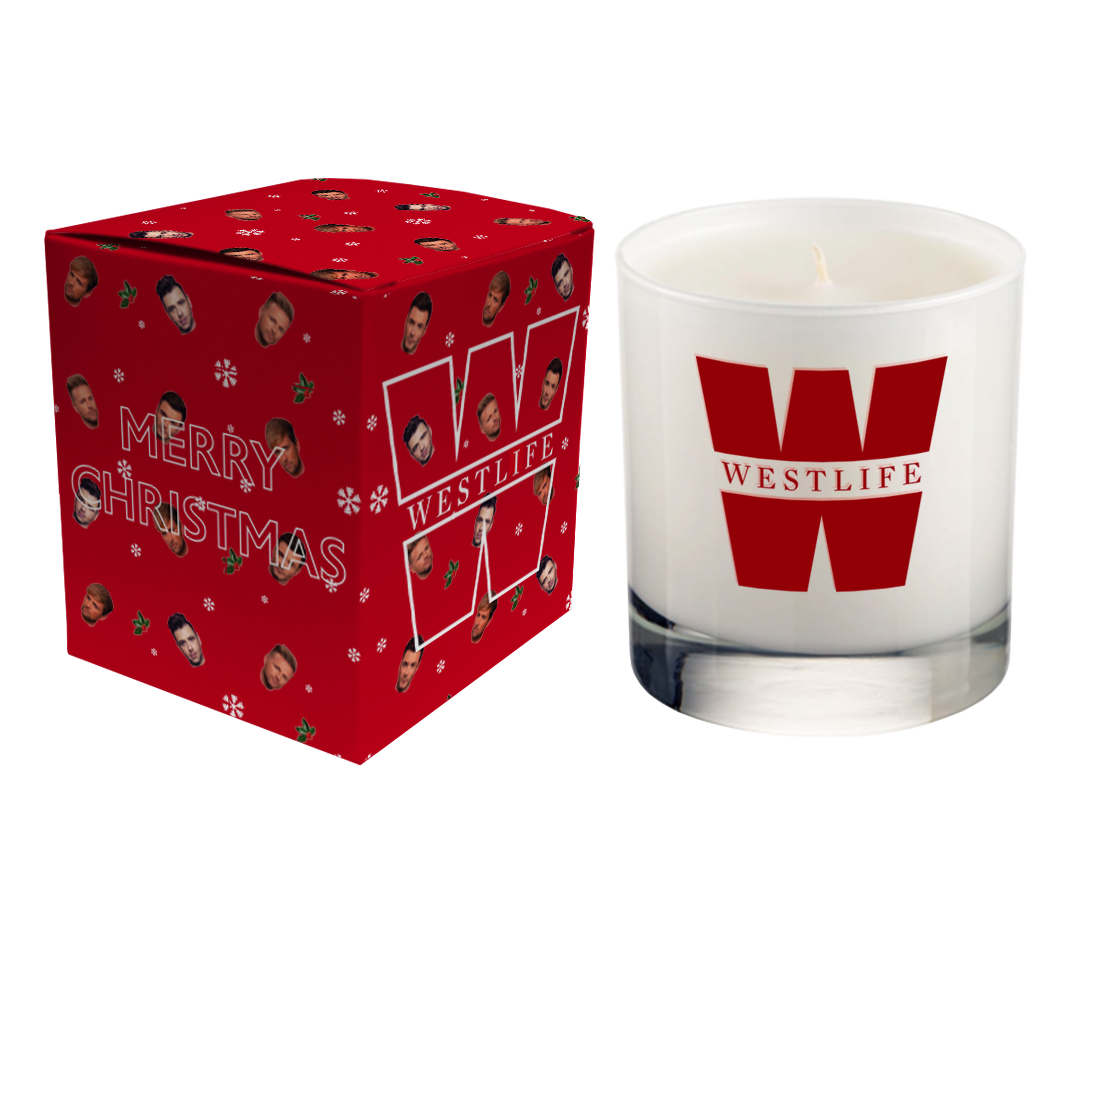 Westlife: SOLD OUT - CINNAMON CLOVE & ORANGE SCENTED CANDLE